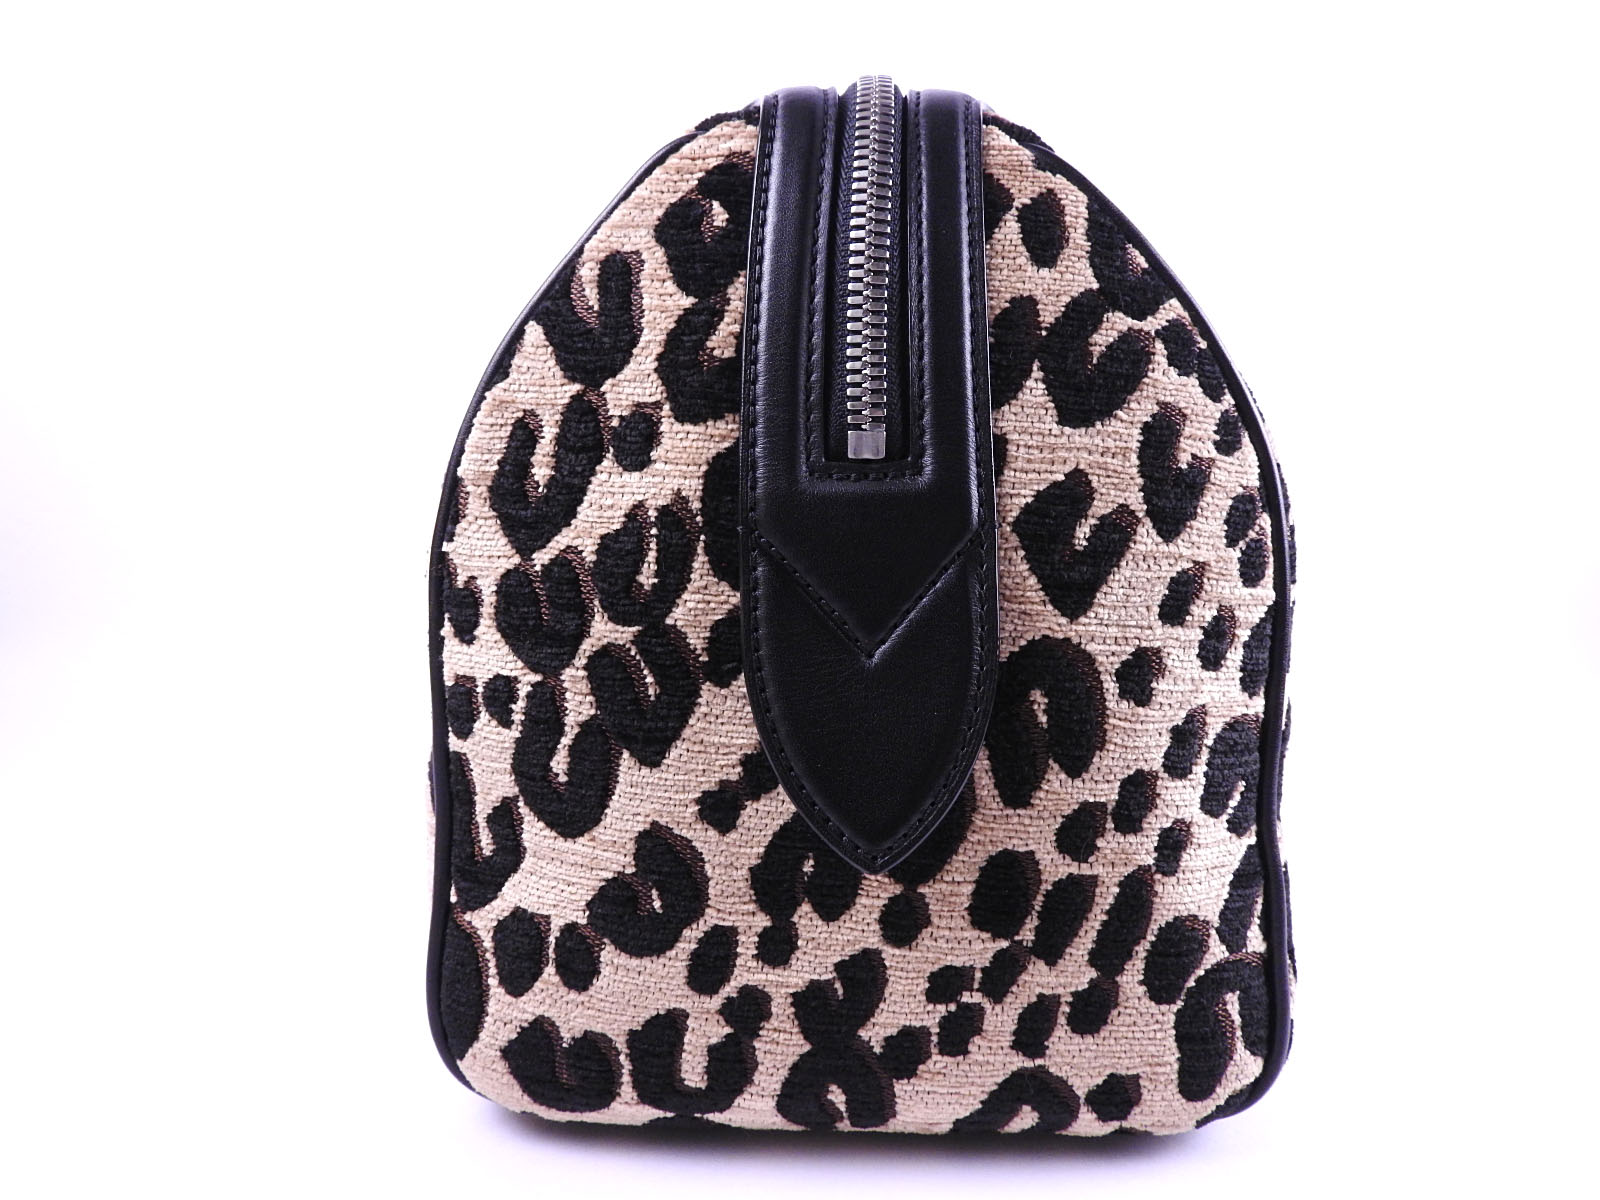 2e82a381b79e LOUIS VUITTON Stephen Sprouse Leopard Speedy PM Hand Bag Beige Black ...